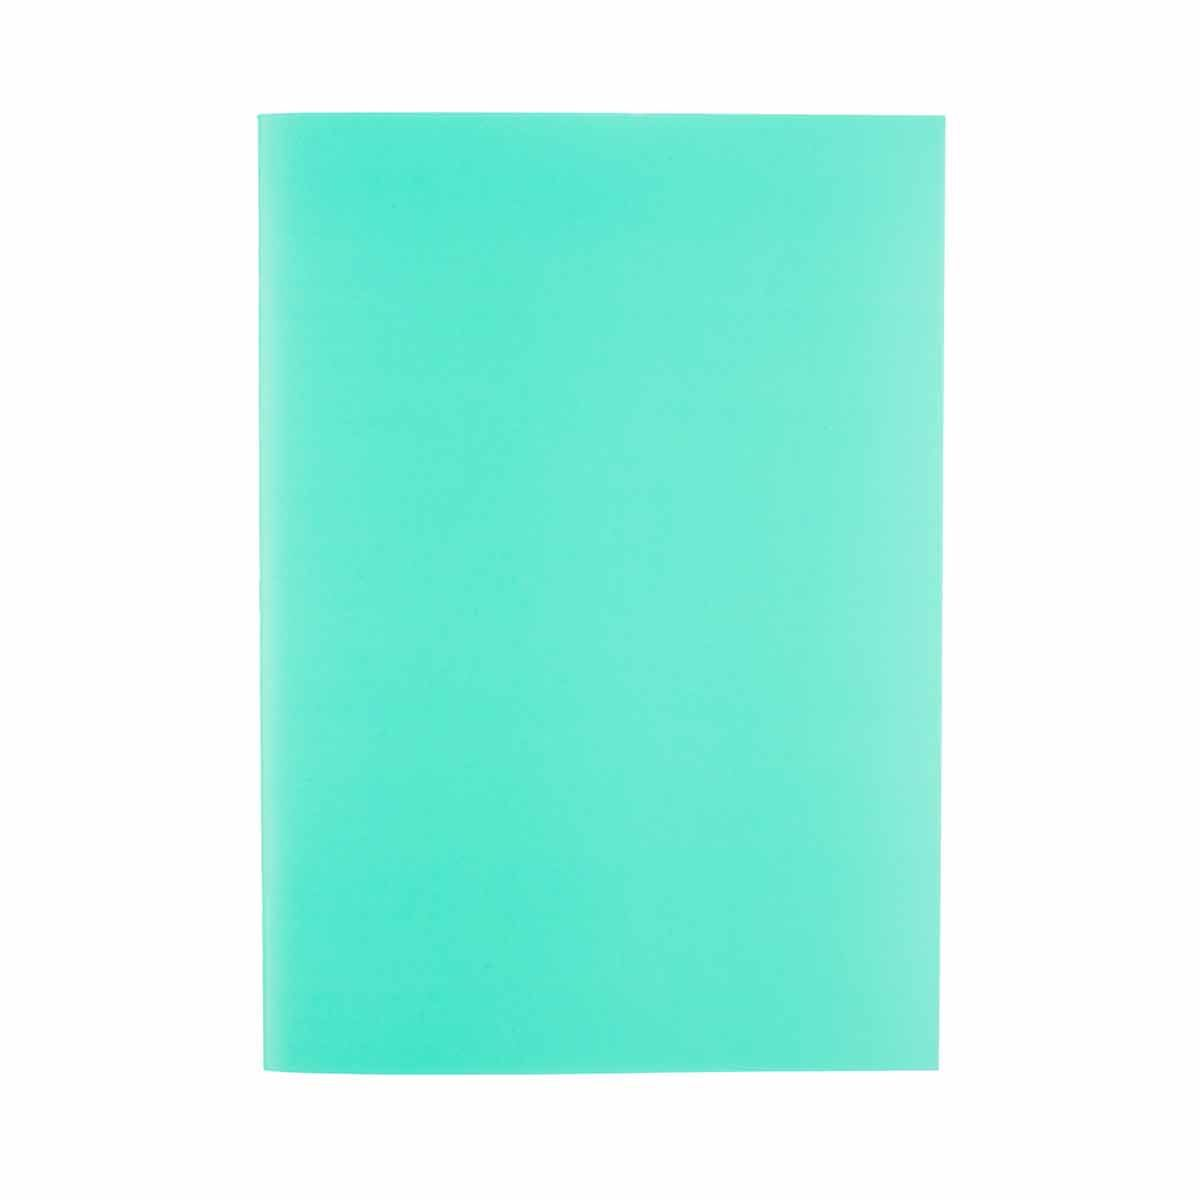 Exercise Book Ruled 80 Page Light Green